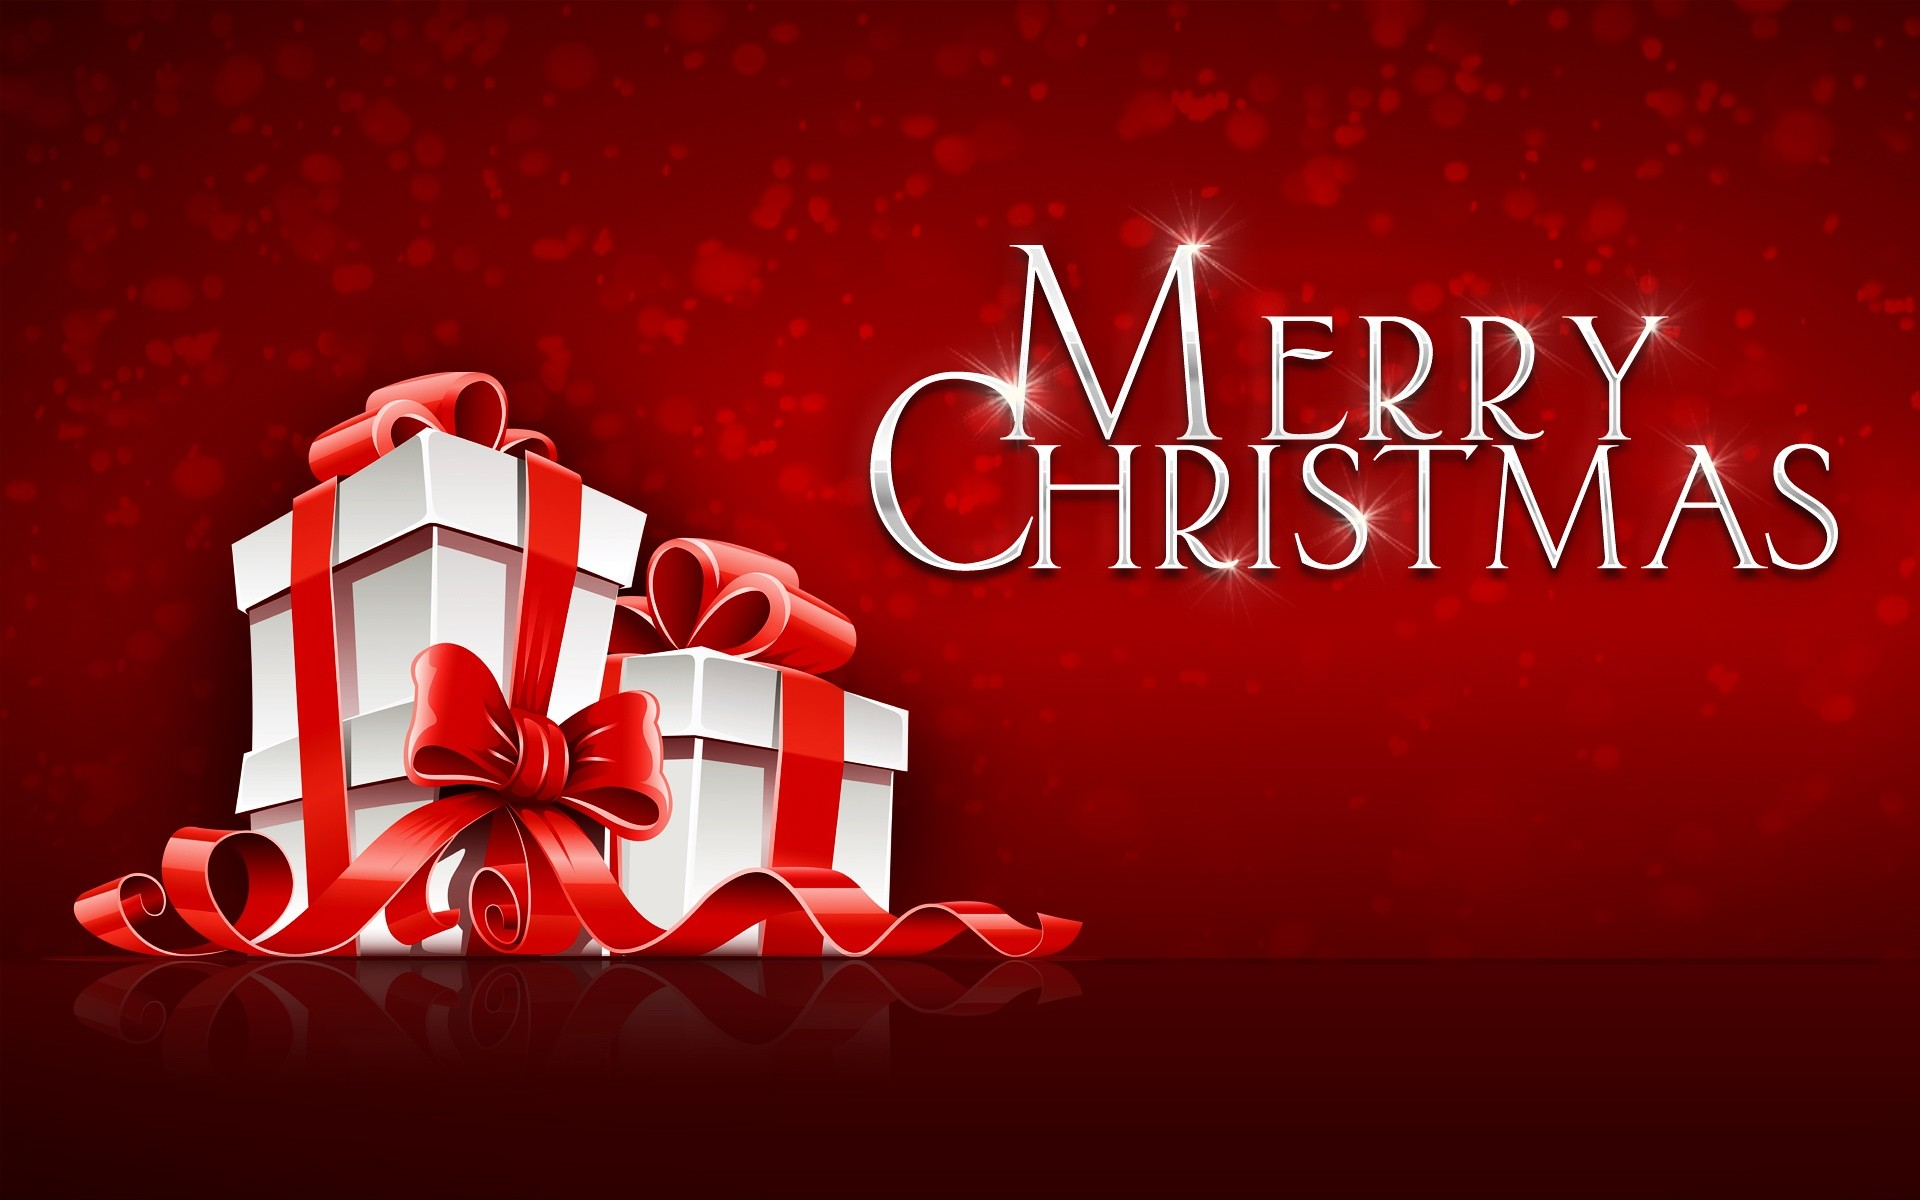 Christmas Wallpapers Images HD.